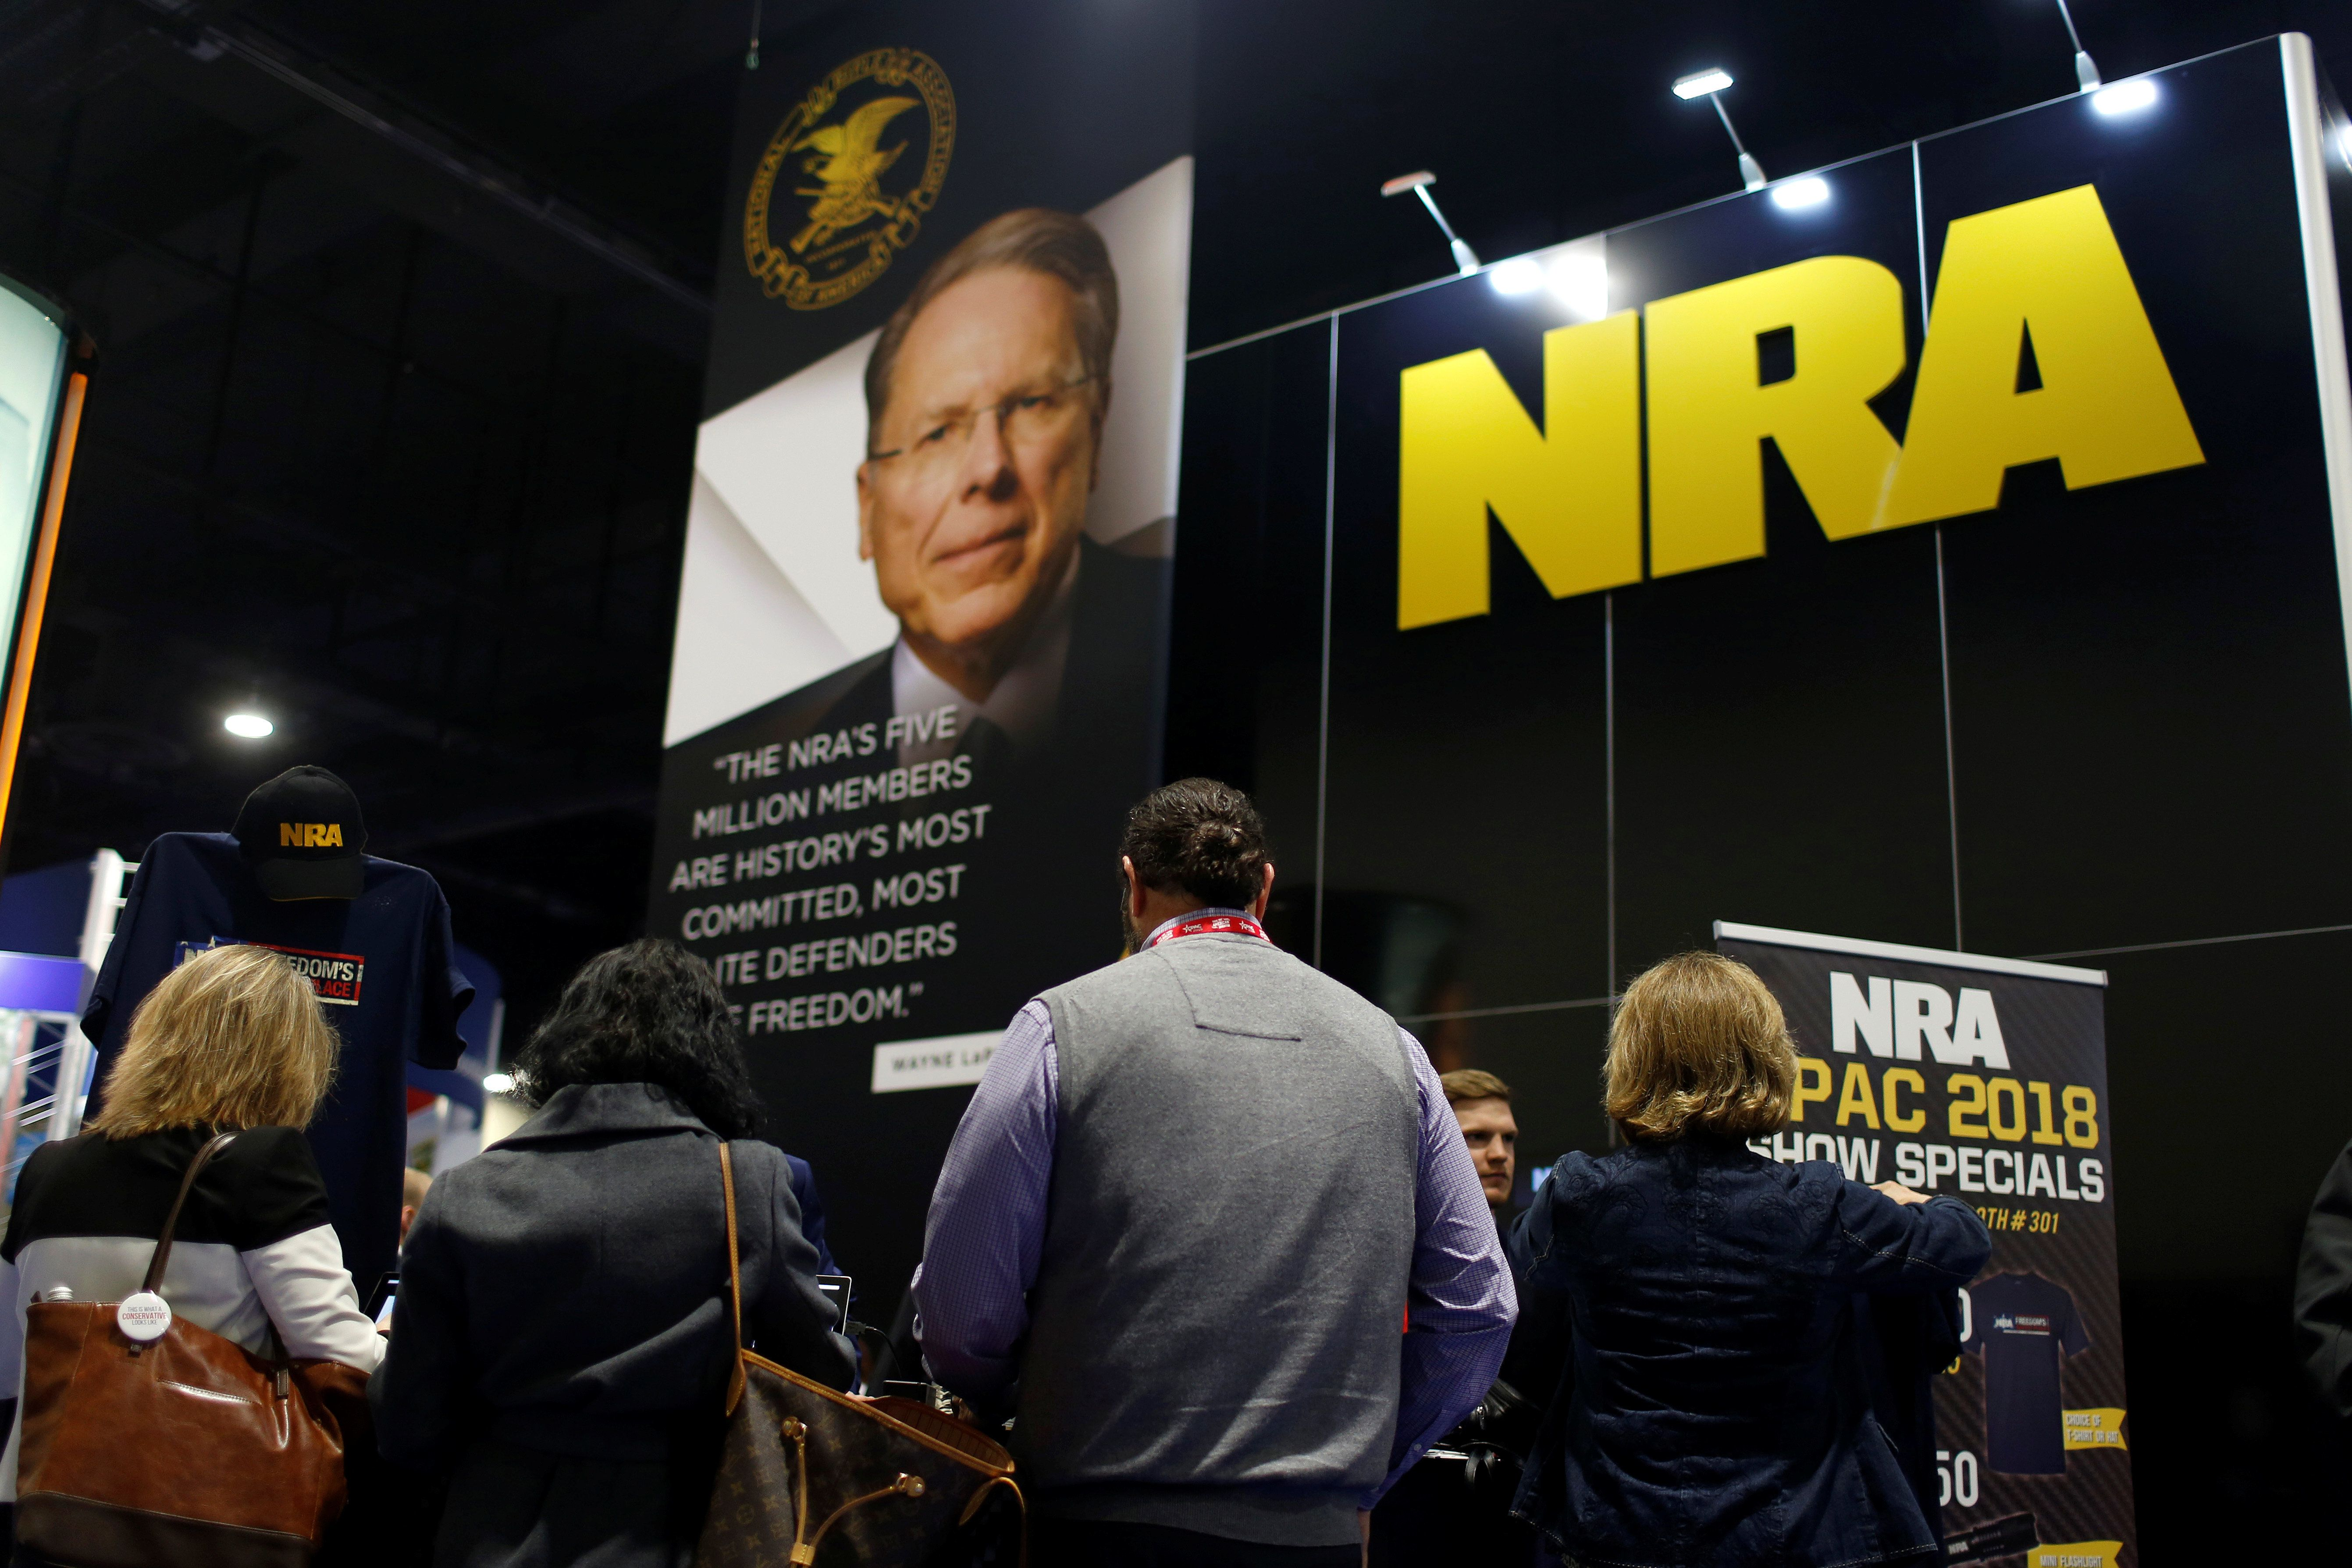 Report: FEC Probing Whether NRA Took Russian Funds For Trump Campaign